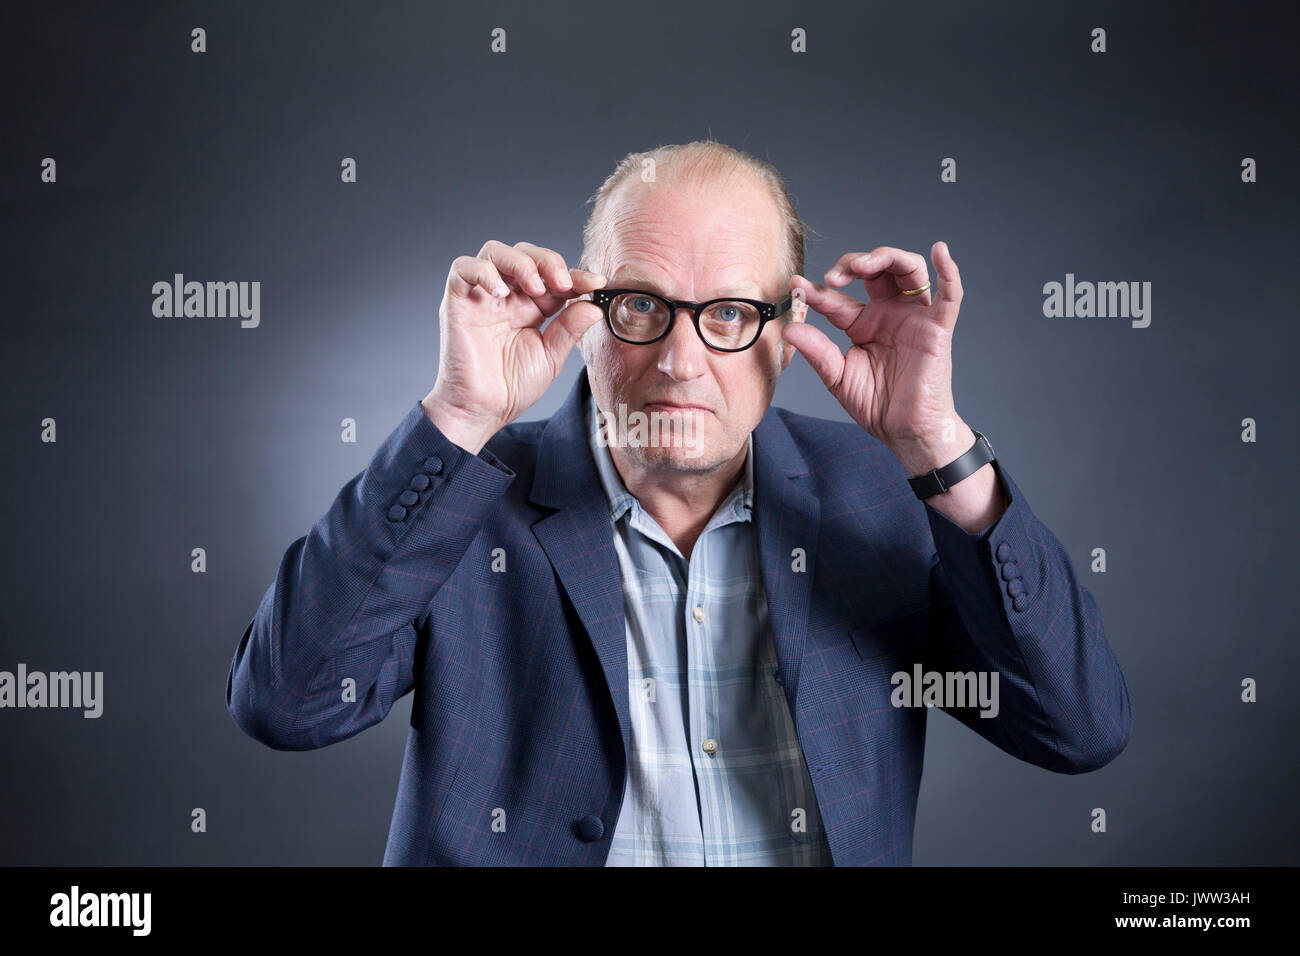 Edinburgh, UK. 13th Aug, 2017. Adrian Charles 'Ade' Edmondson, the English comedian, actor, writer, musician, television presenter and director, appearing at the Edinburgh International Book Festival. Credit: GARY DOAK/Alamy Live News - Stock Image